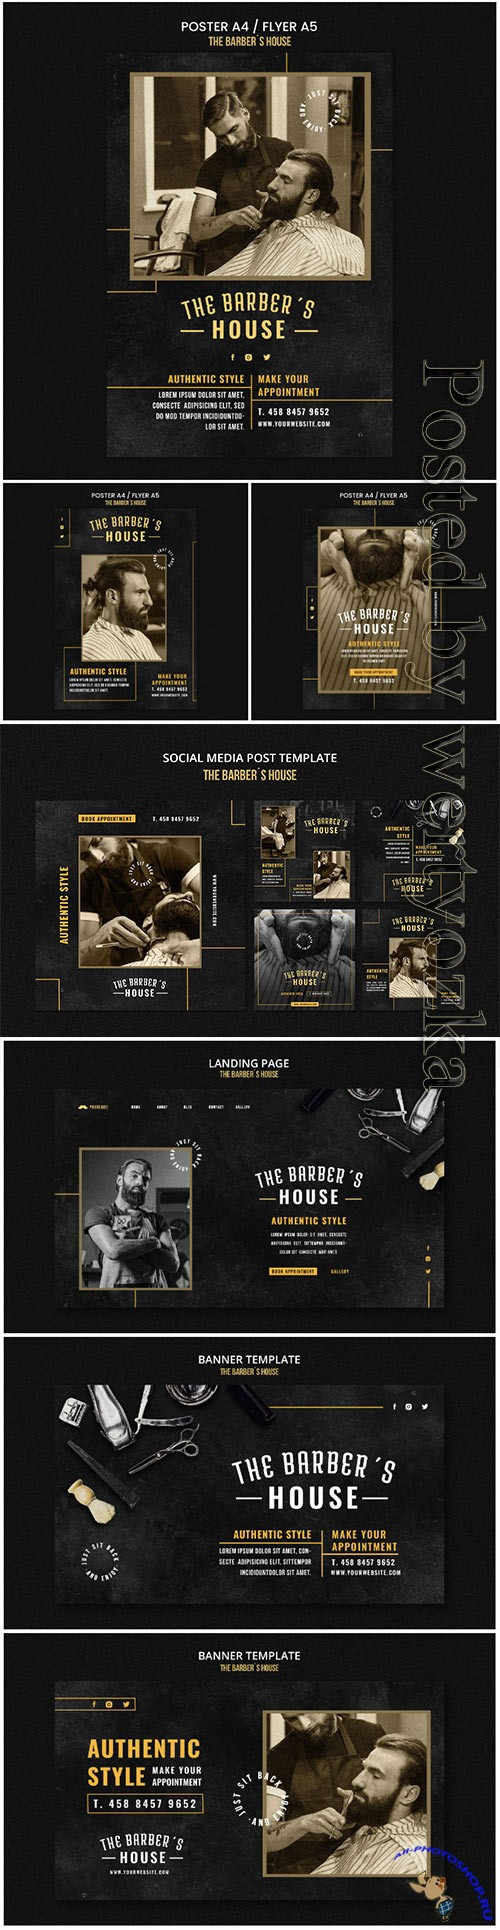 Barber shop poster template psd